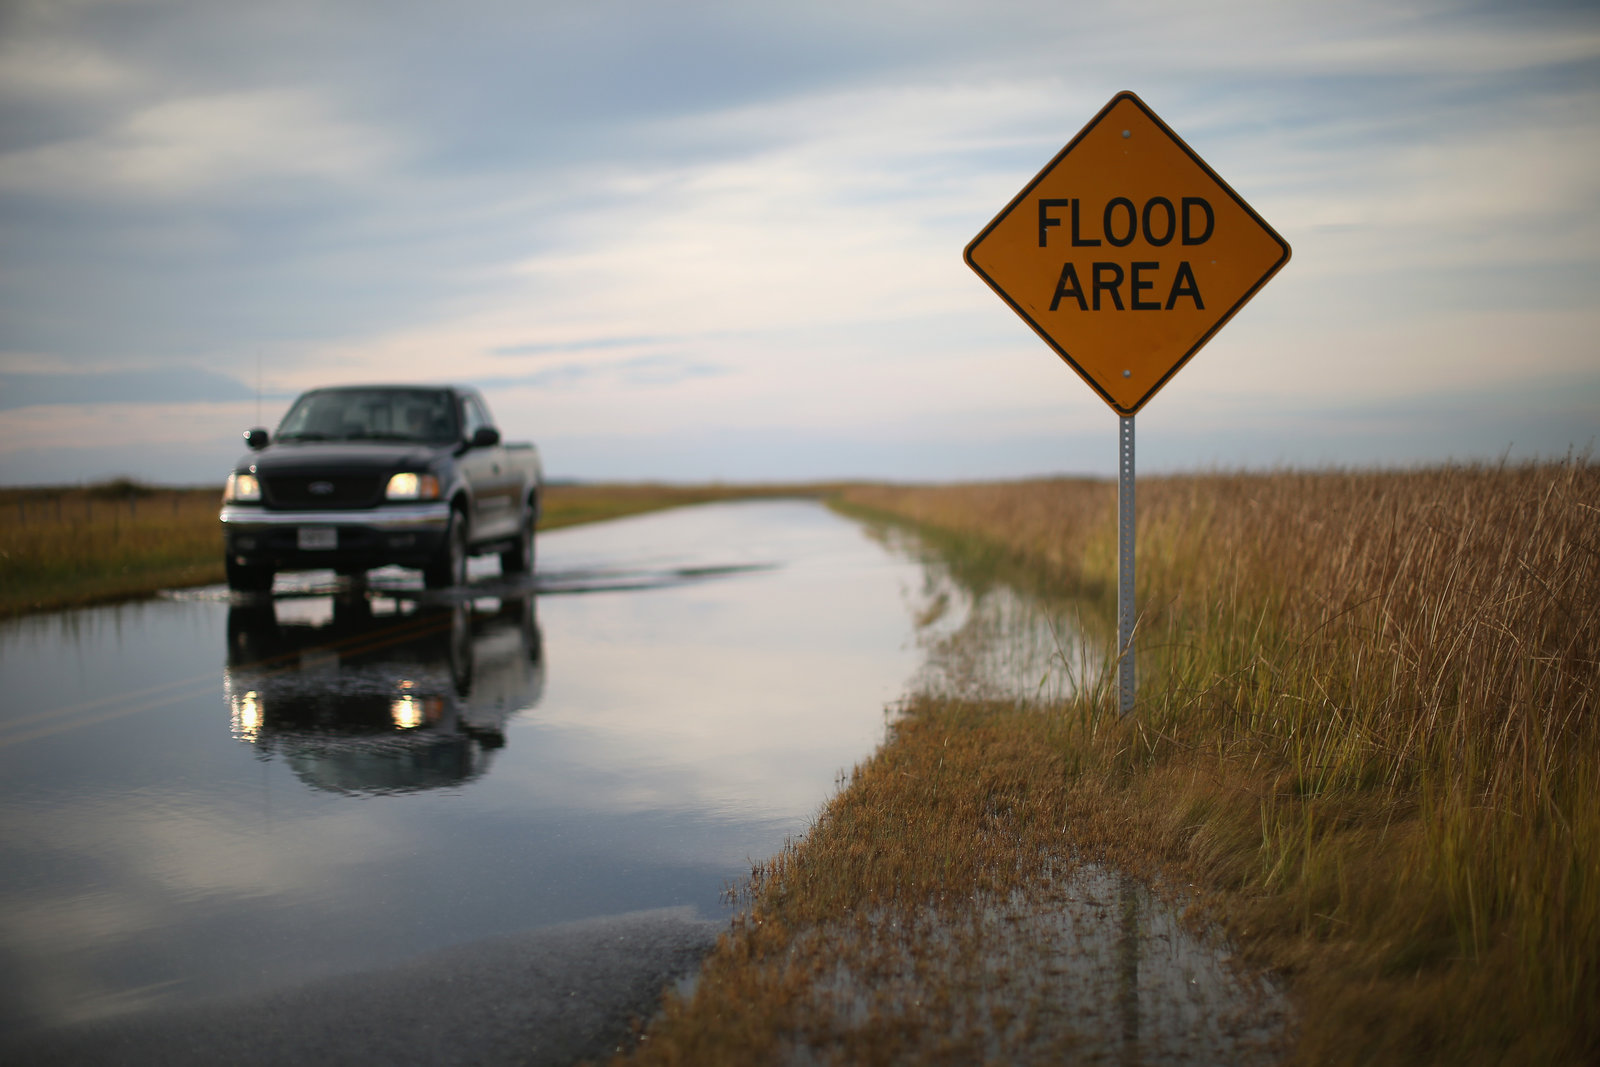 Places like Robbins, Md., are already struggling with sea level rise